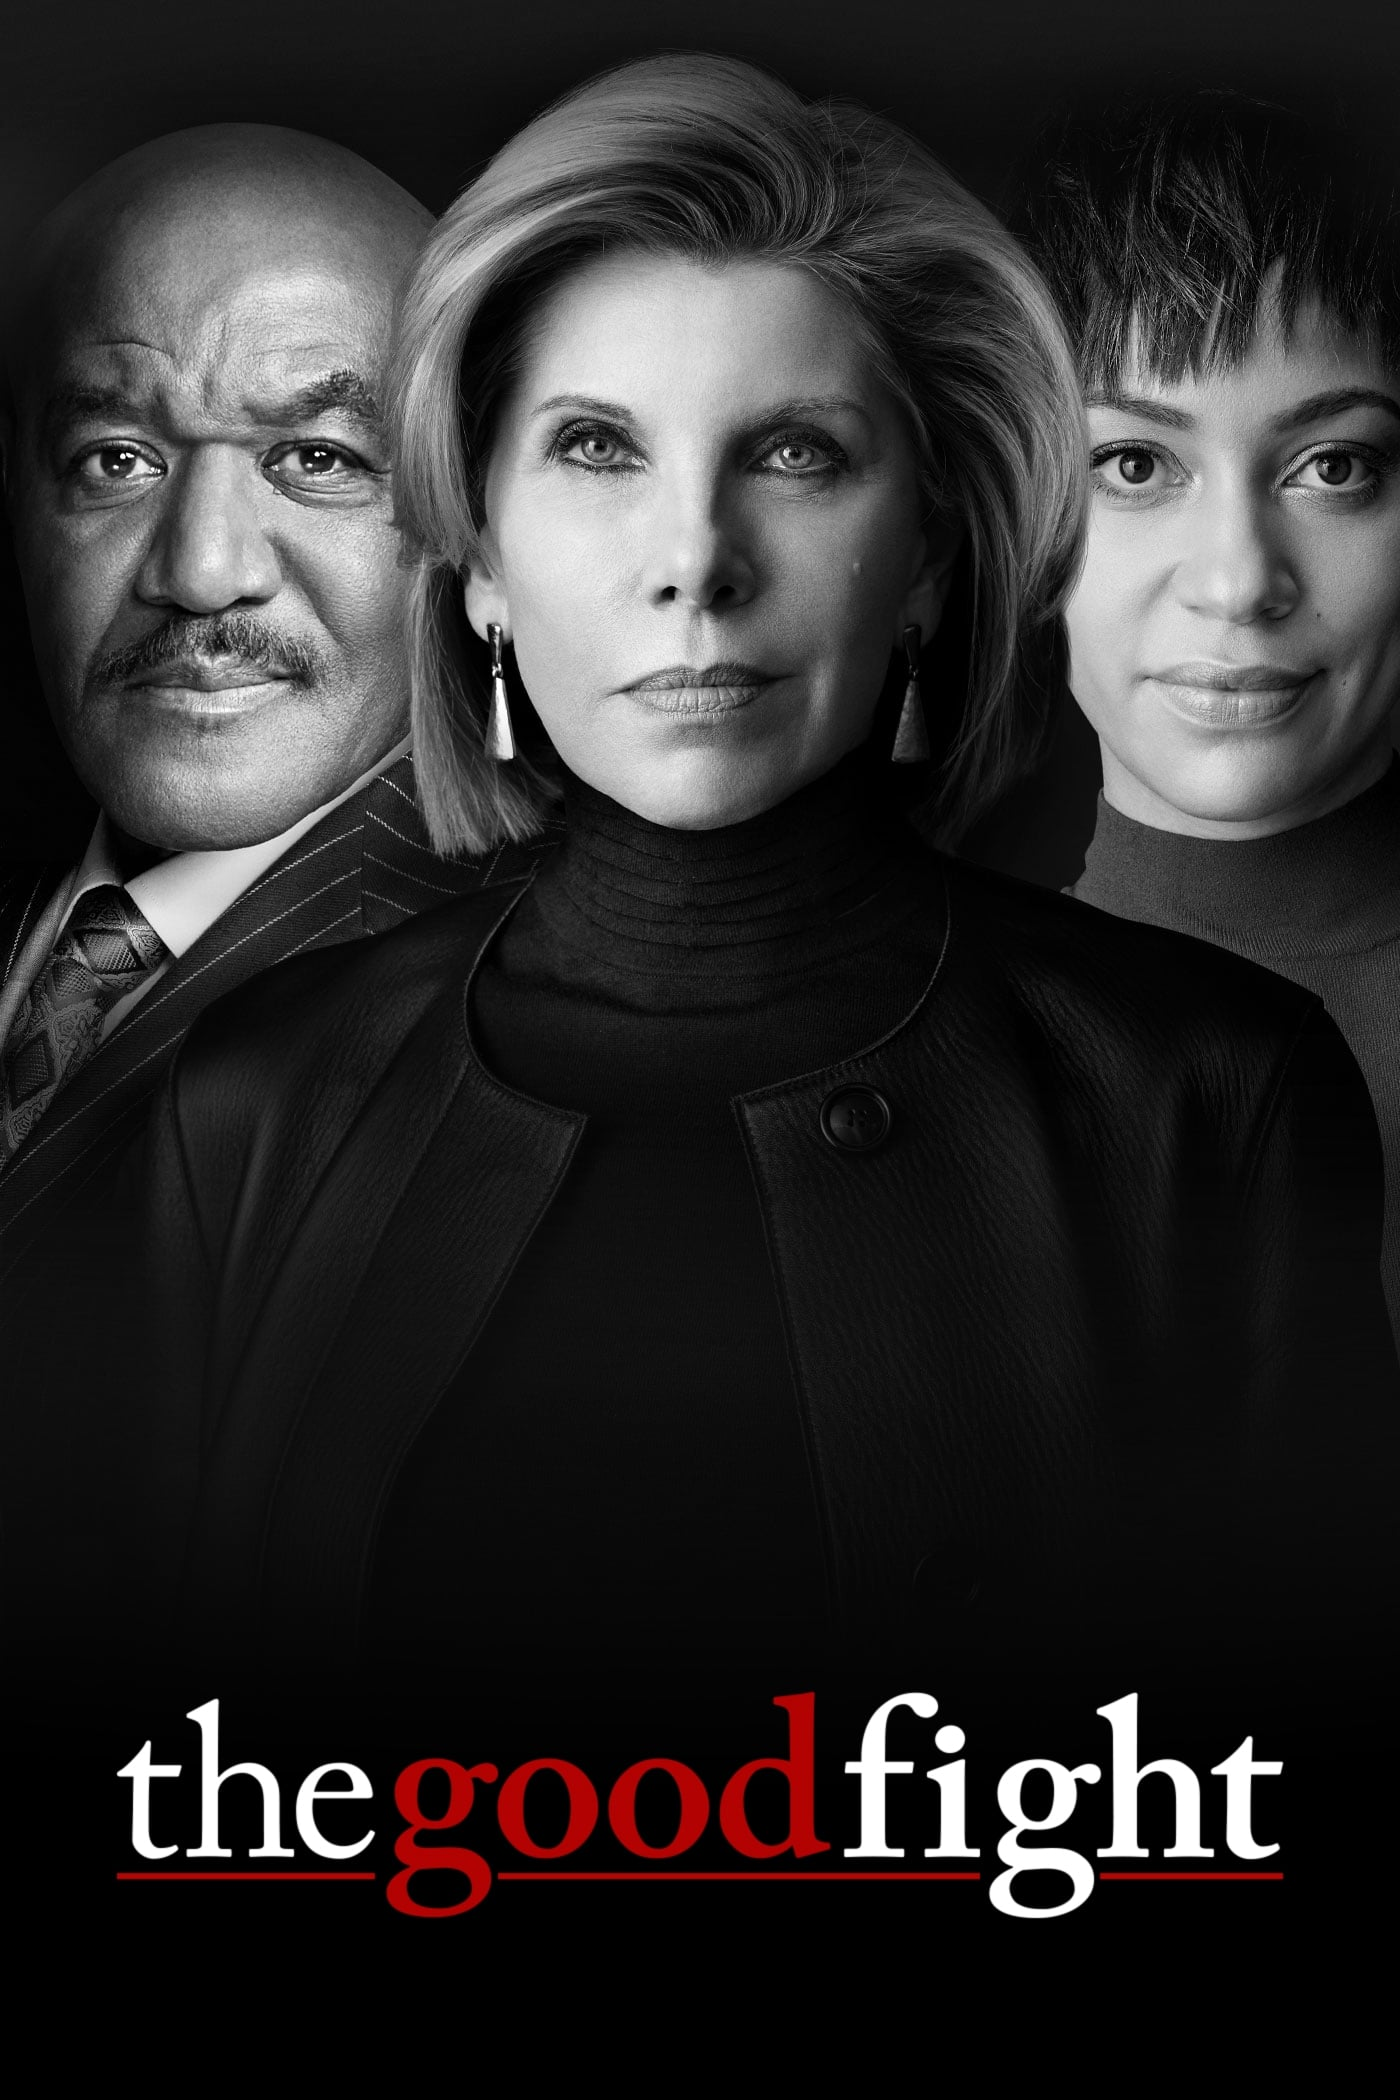 The Good Fight' />